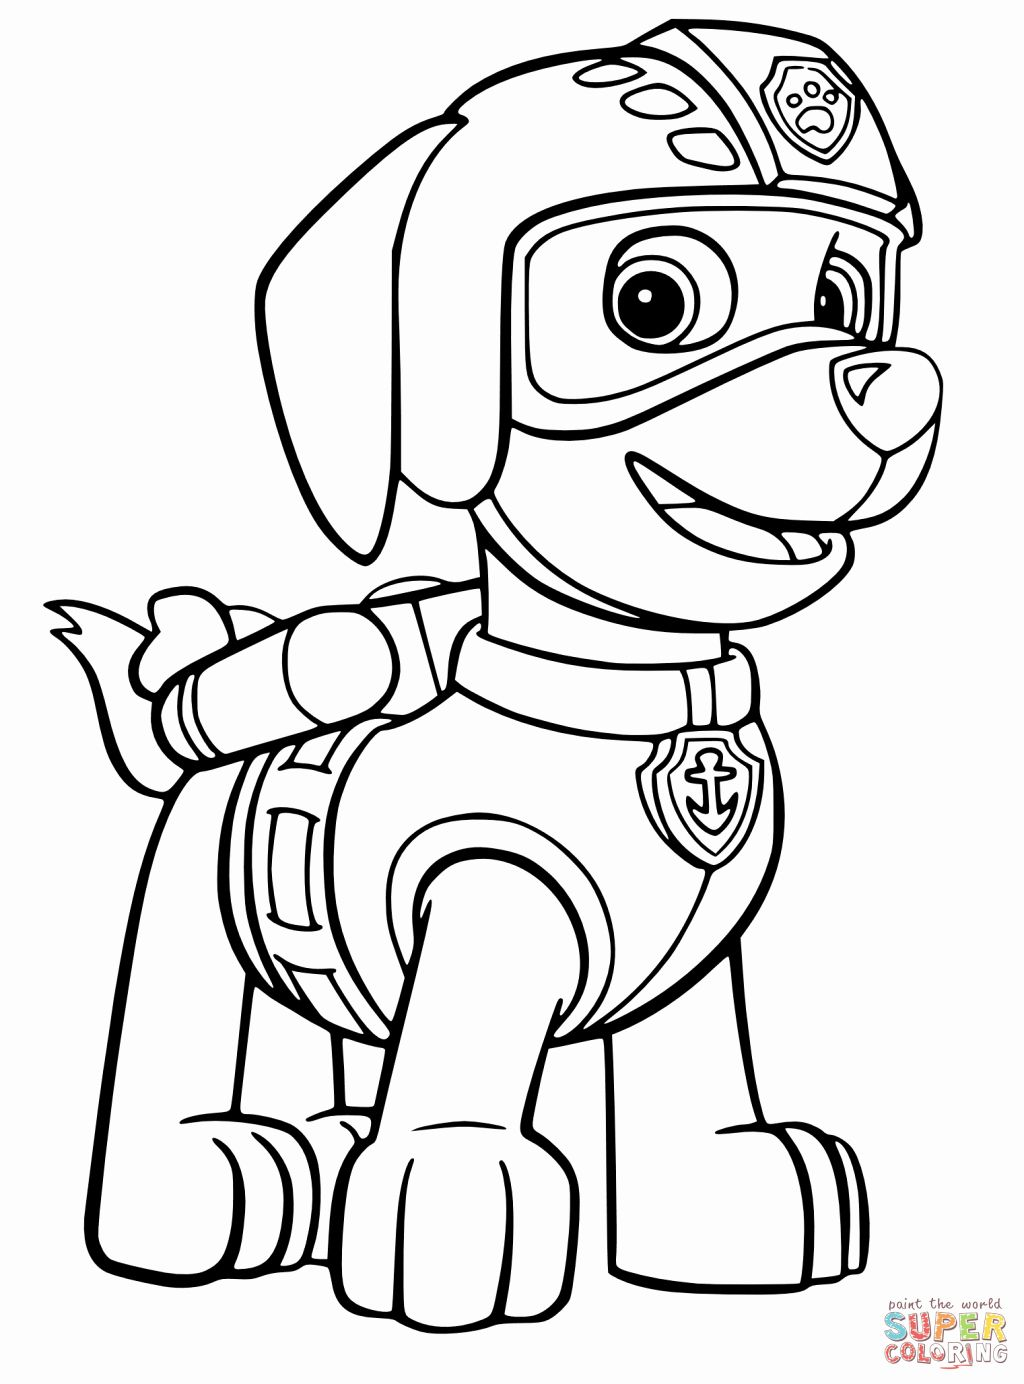 Toys Coloring Pages Free Printable Inspirational Coloring Books